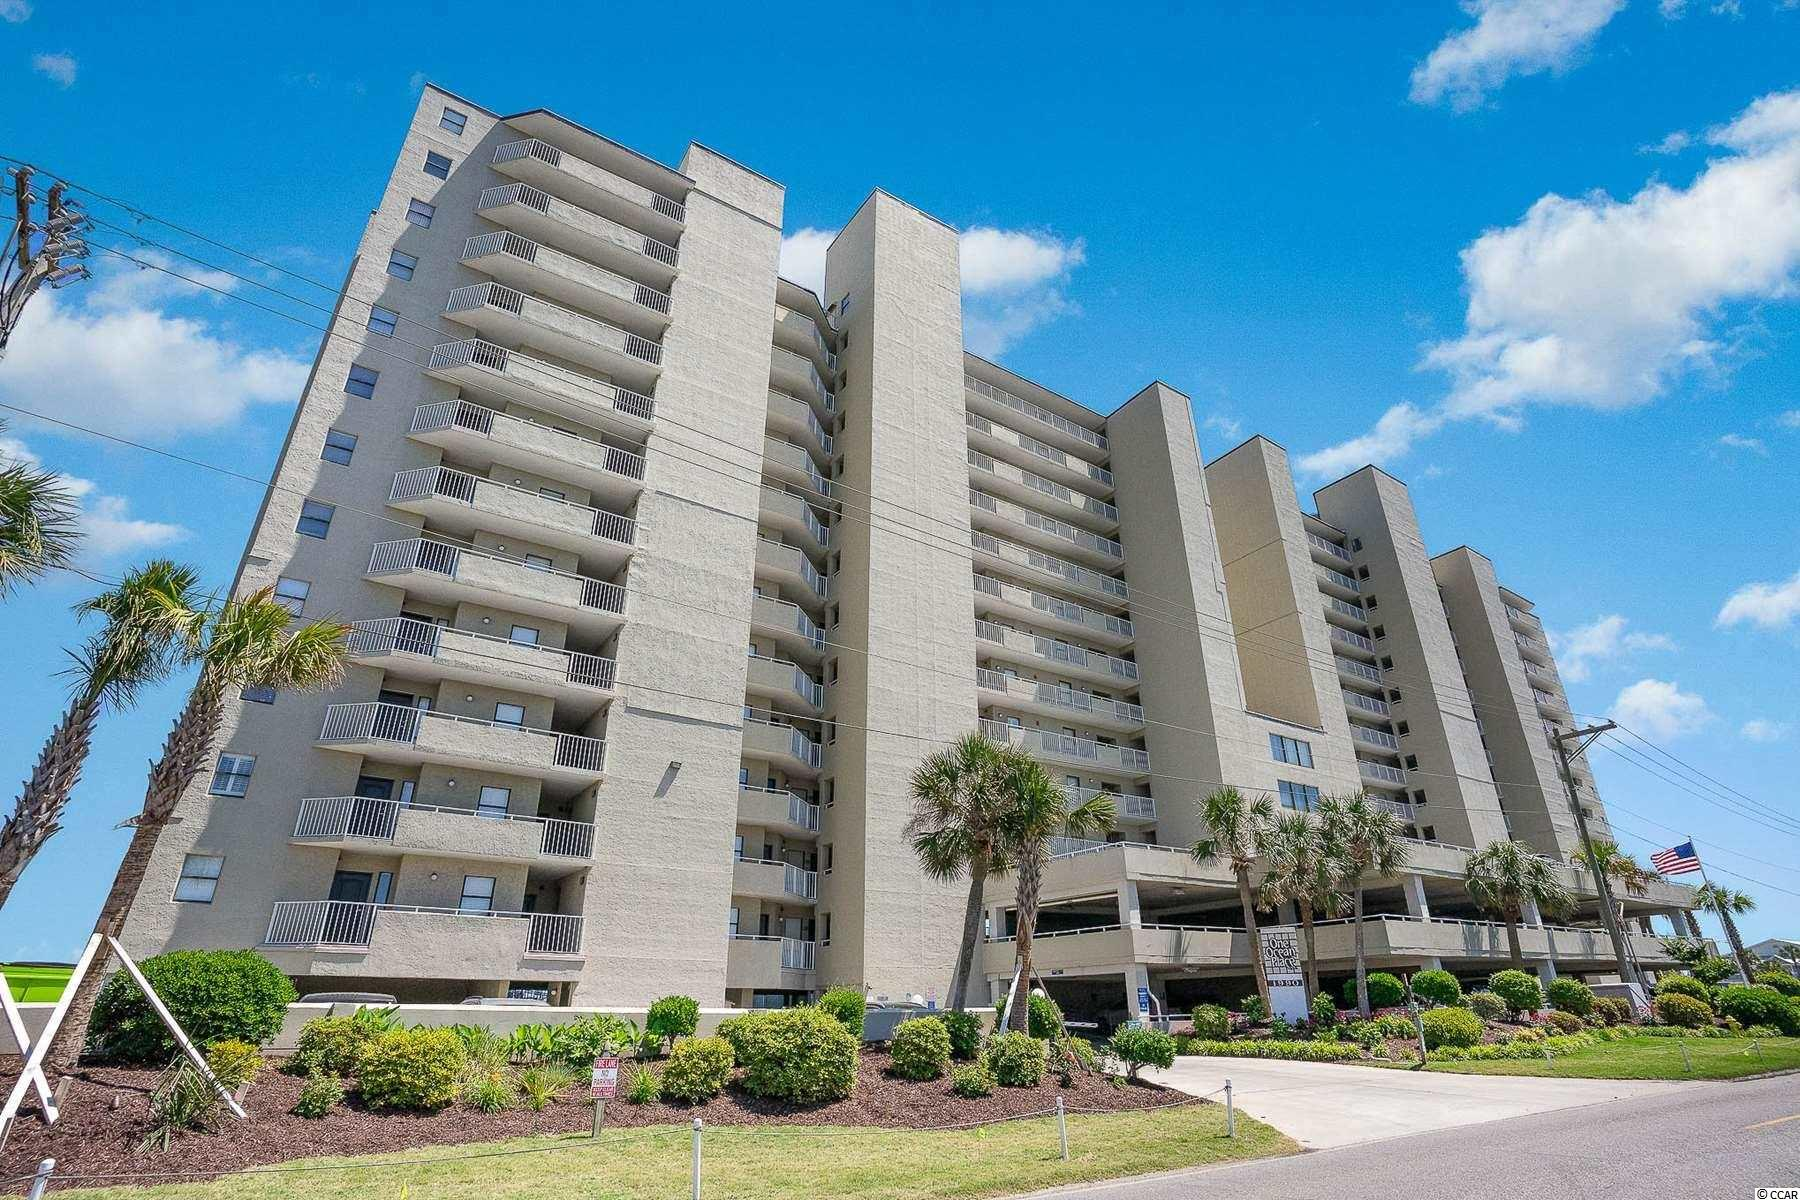 Located in One Ocean Place, a premier oceanfront building in Garden City Beach, this gorgeous 3 bed 3 bath condo comes fully furnished and is beautifully decorated! The unit offers an open floor plan and a large living room for your whole family to enjoy during vacation or as a primary residence.  The kitchen offers SS appliances, granite countertops and tiled backsplash, beautiful cabinets & a breakfast bar that provides extra seating.  The Master Suite offers it's own access to the the huge, wrap around, open space balcony - 1 of only 2 units in the North Tower & only 4 in the Resort, a walk-in closet, garden tub and a separate shower.  The additional bedrooms are generous in size with ample closet space and have their own bathrooms.  Amenities include 2 exterior oceanfront pools, 2 exterior hot tubs, sun deck, owner's lounge and owner's gym. Conveniently located to all of Murrells Inlet's best dining & entertainment, the MarshWalk, shopping and much more.  Hurry and schedule your showing today!